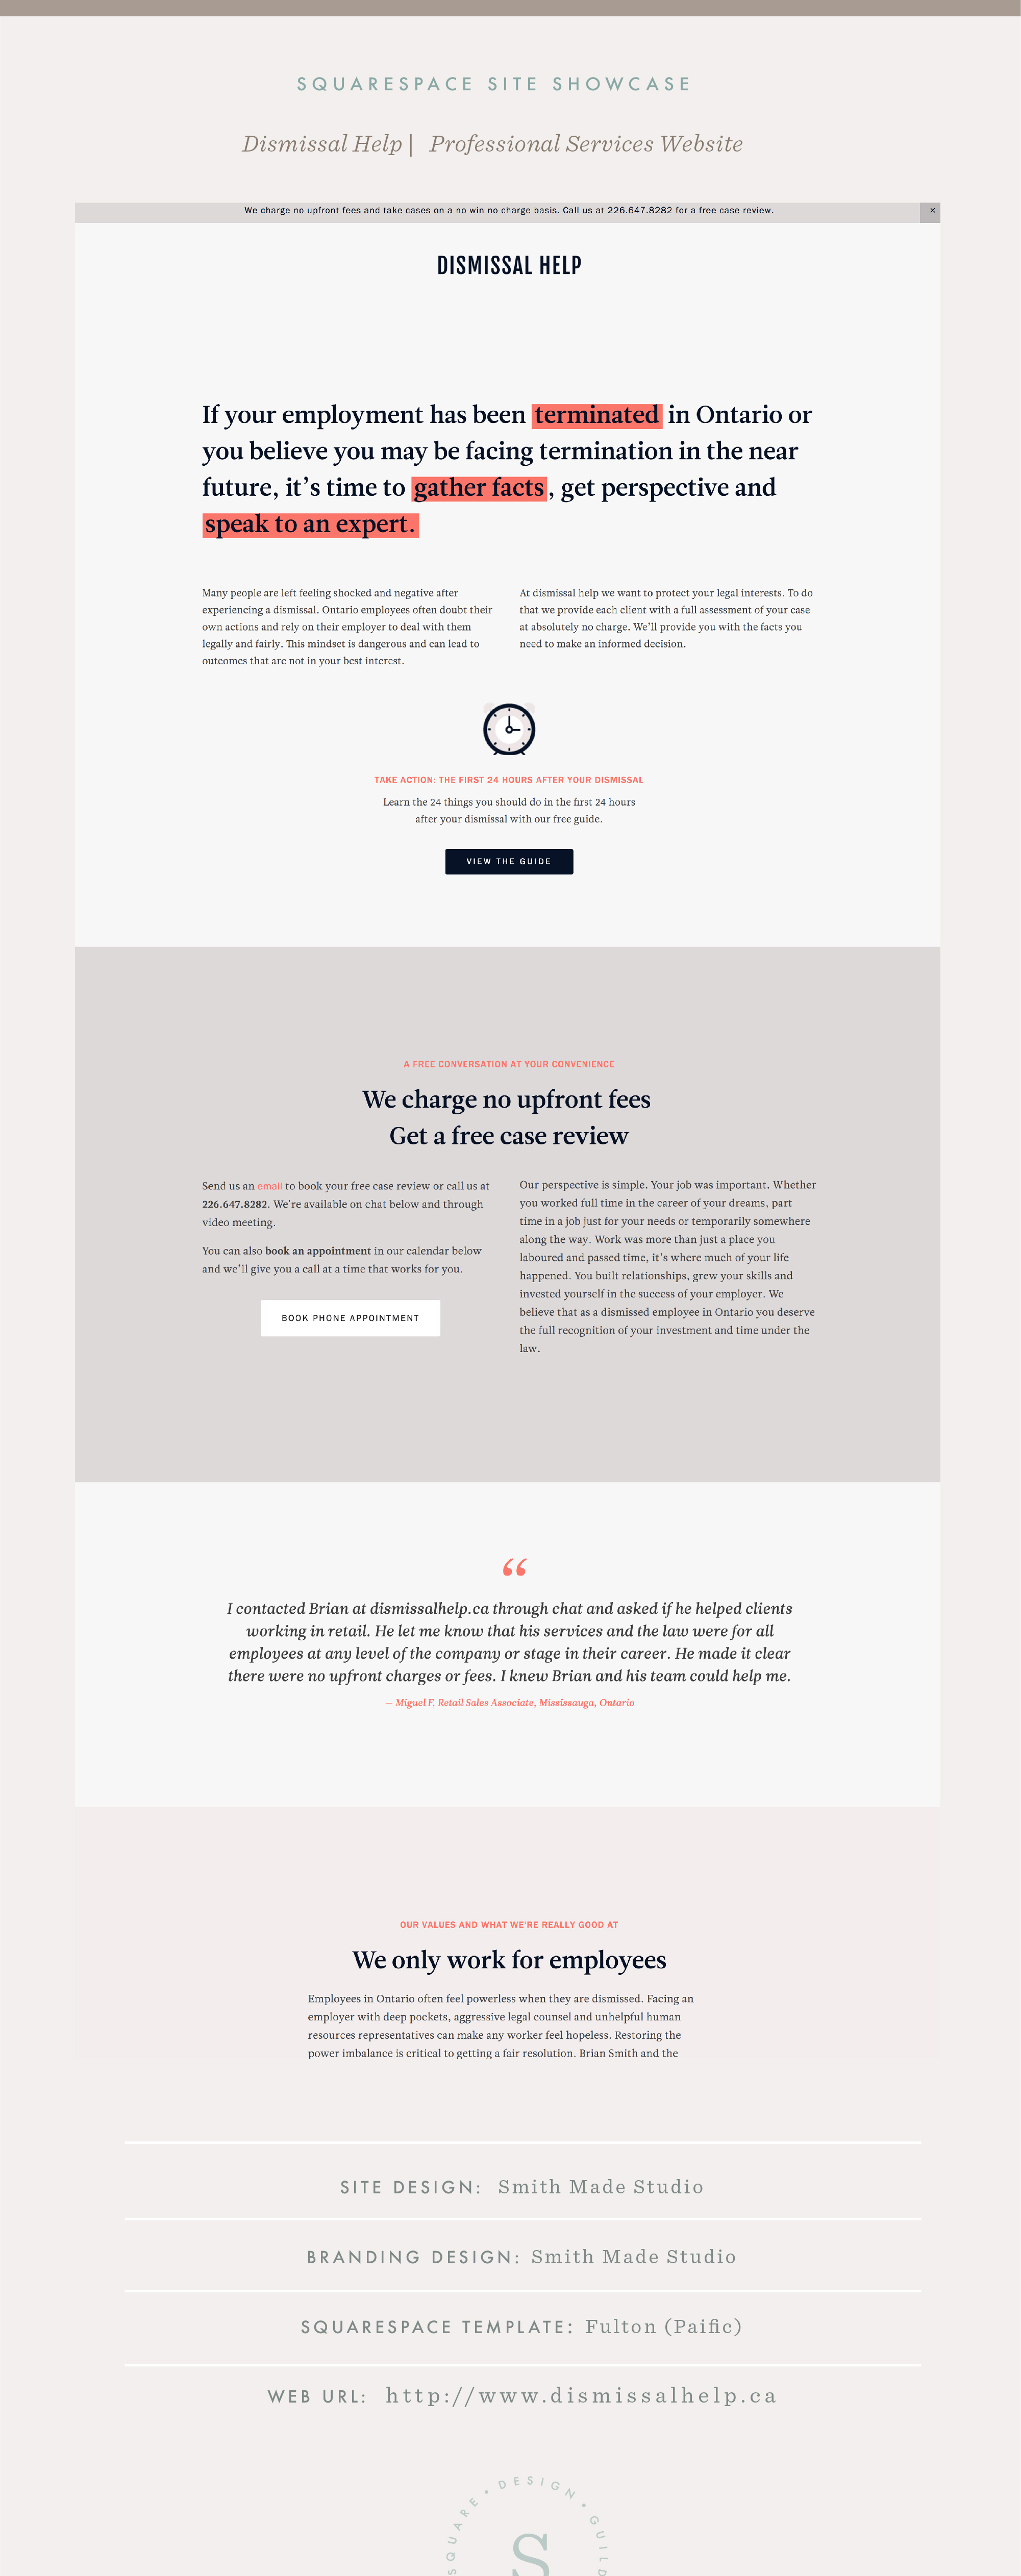 Squarespace Site Showcase | Smithmade Studio | Dismissal Help | Pacific Template | Example of Lawyer Website on Squarespace